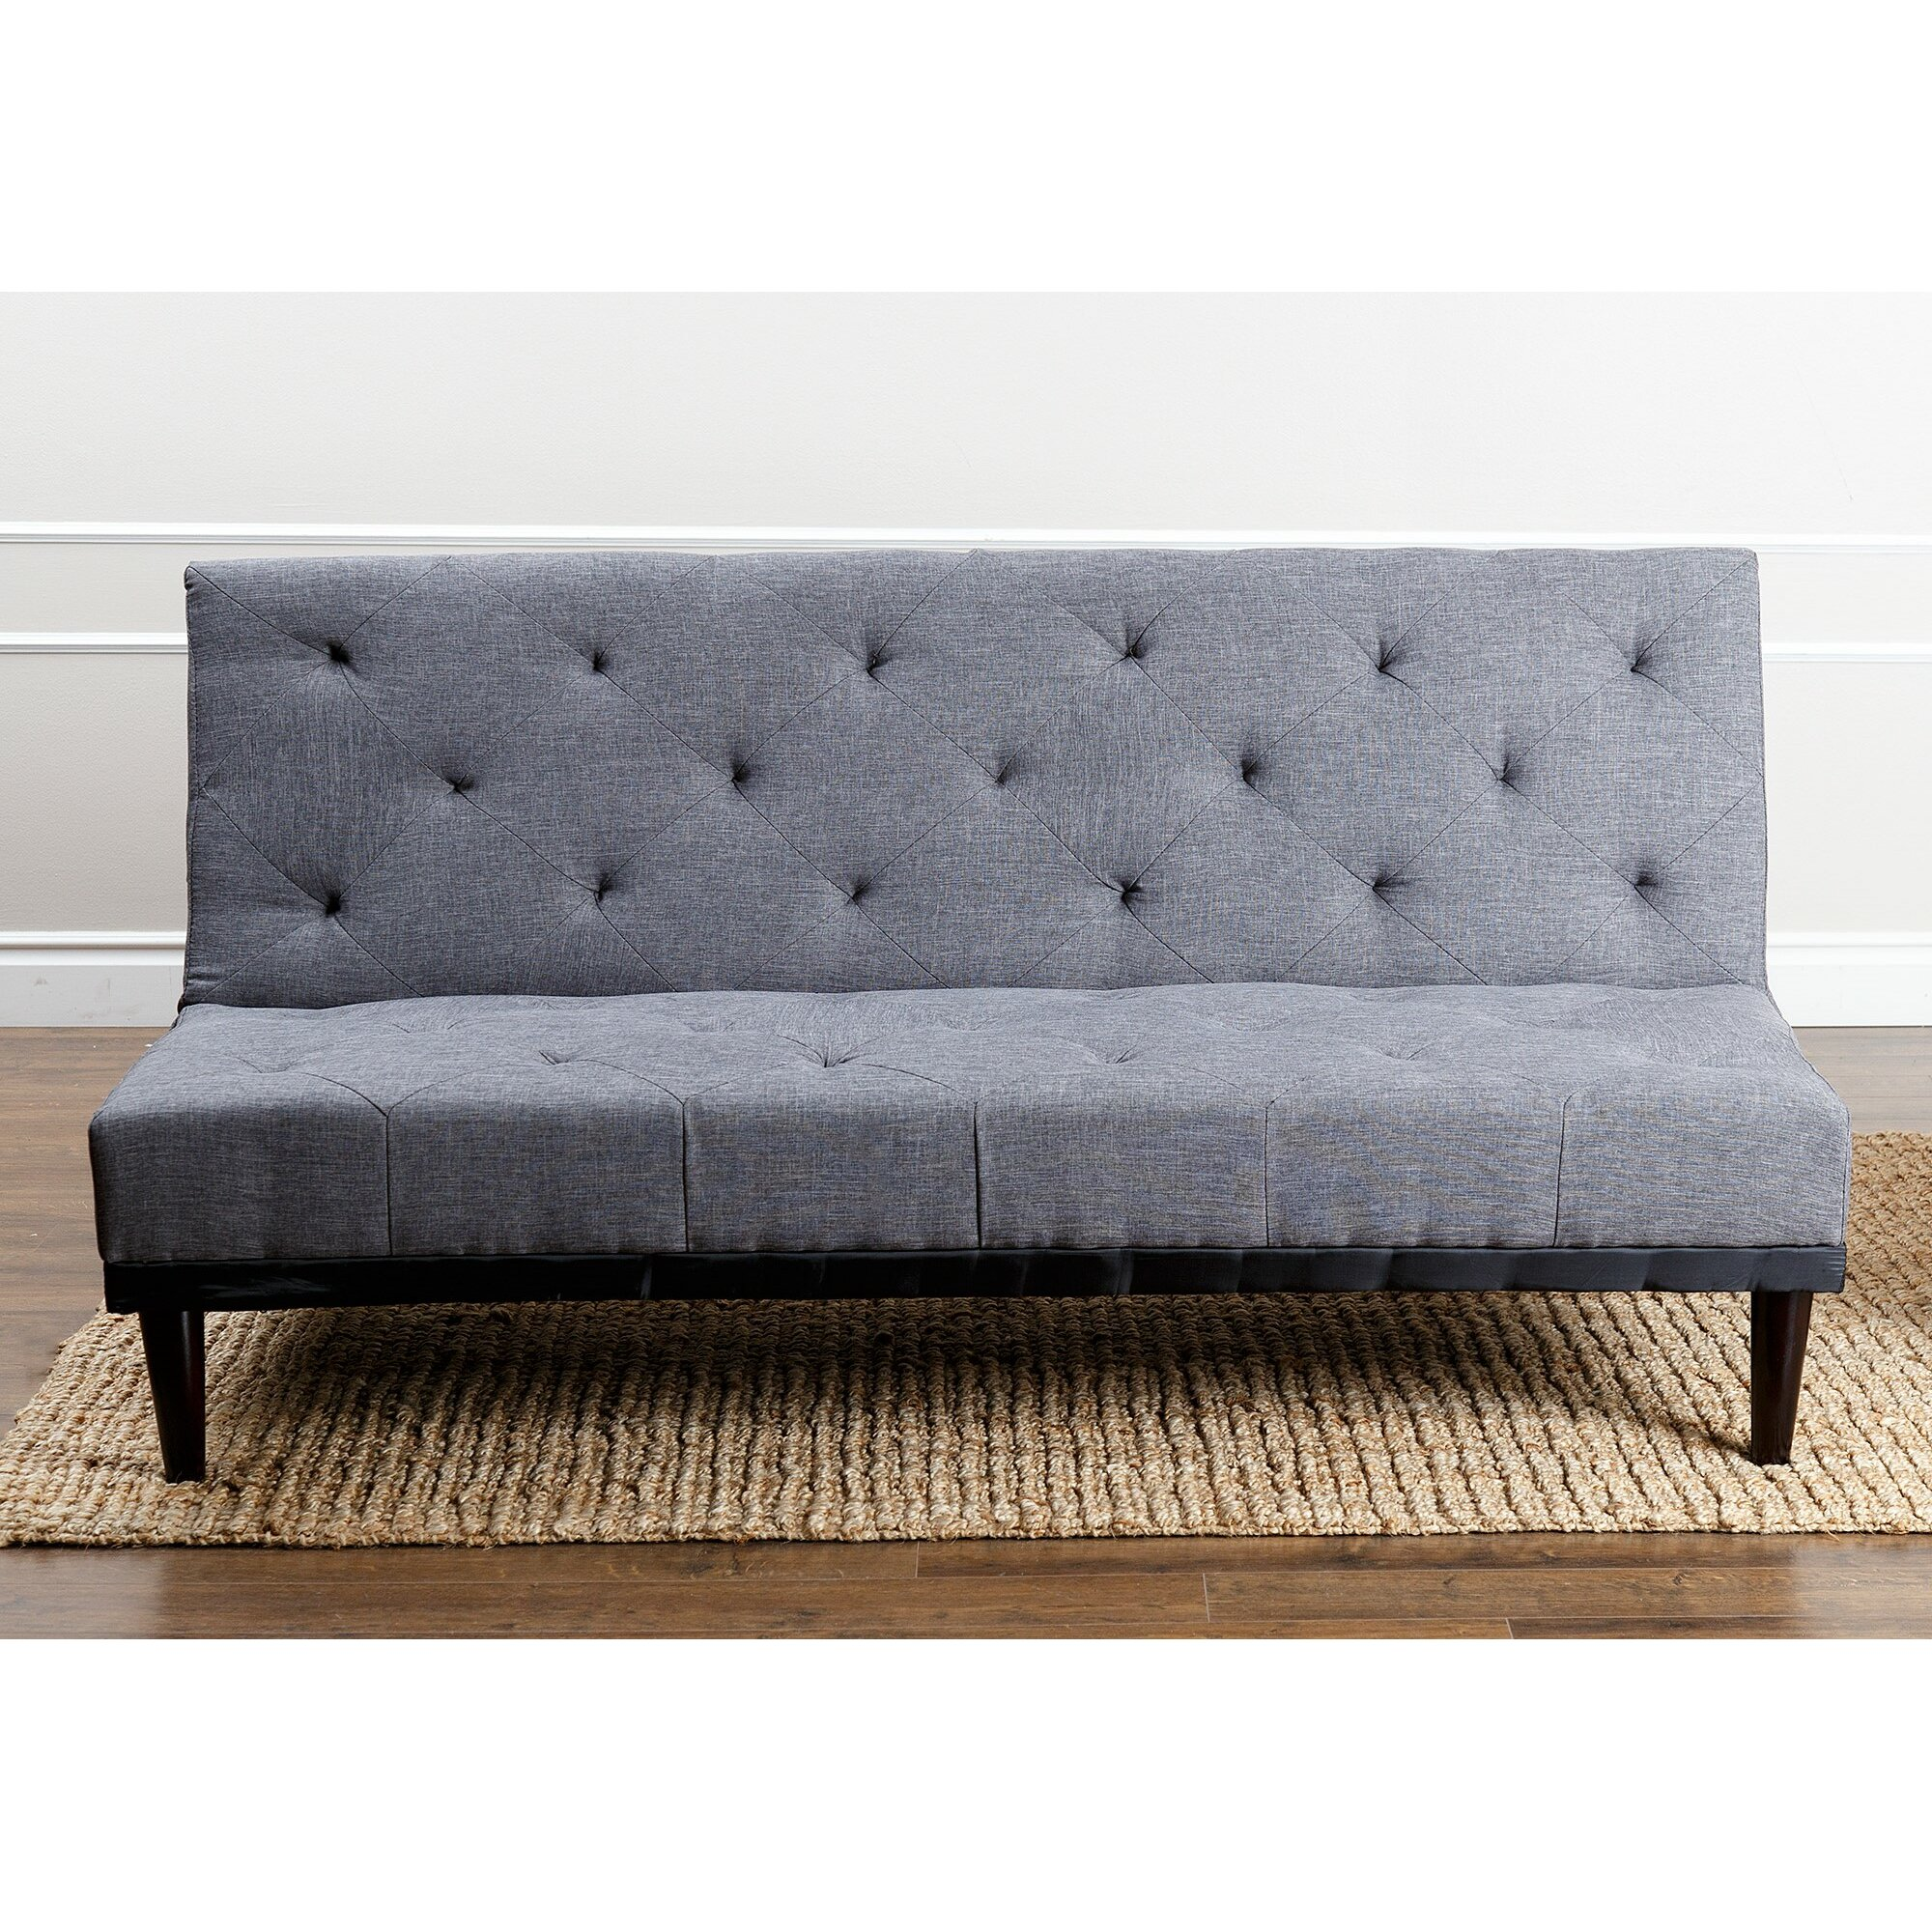 Bernhardt leather sofa dillards full size of furniture for Bernhardt leather sectional sofa prices